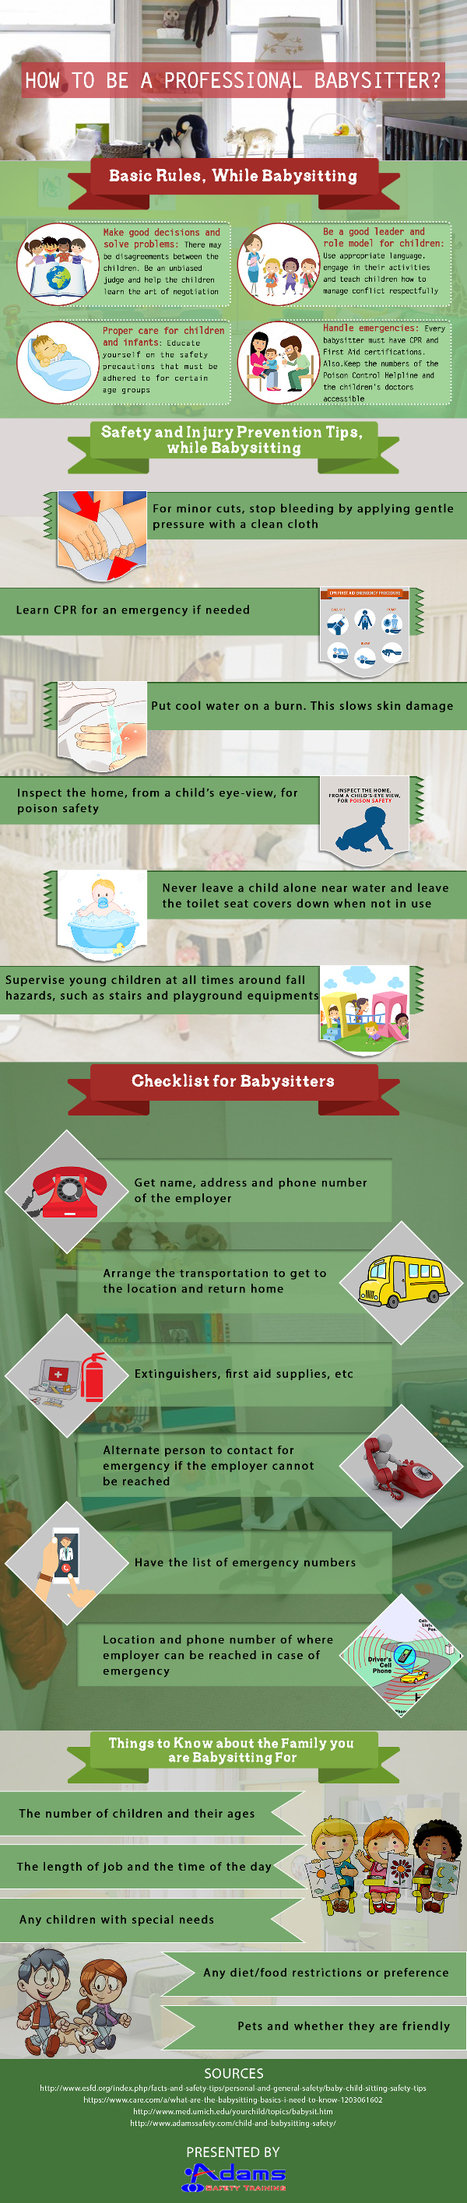 A Complete Guide on How to Become a Professional Babysitter | Infographic | Scoop.it